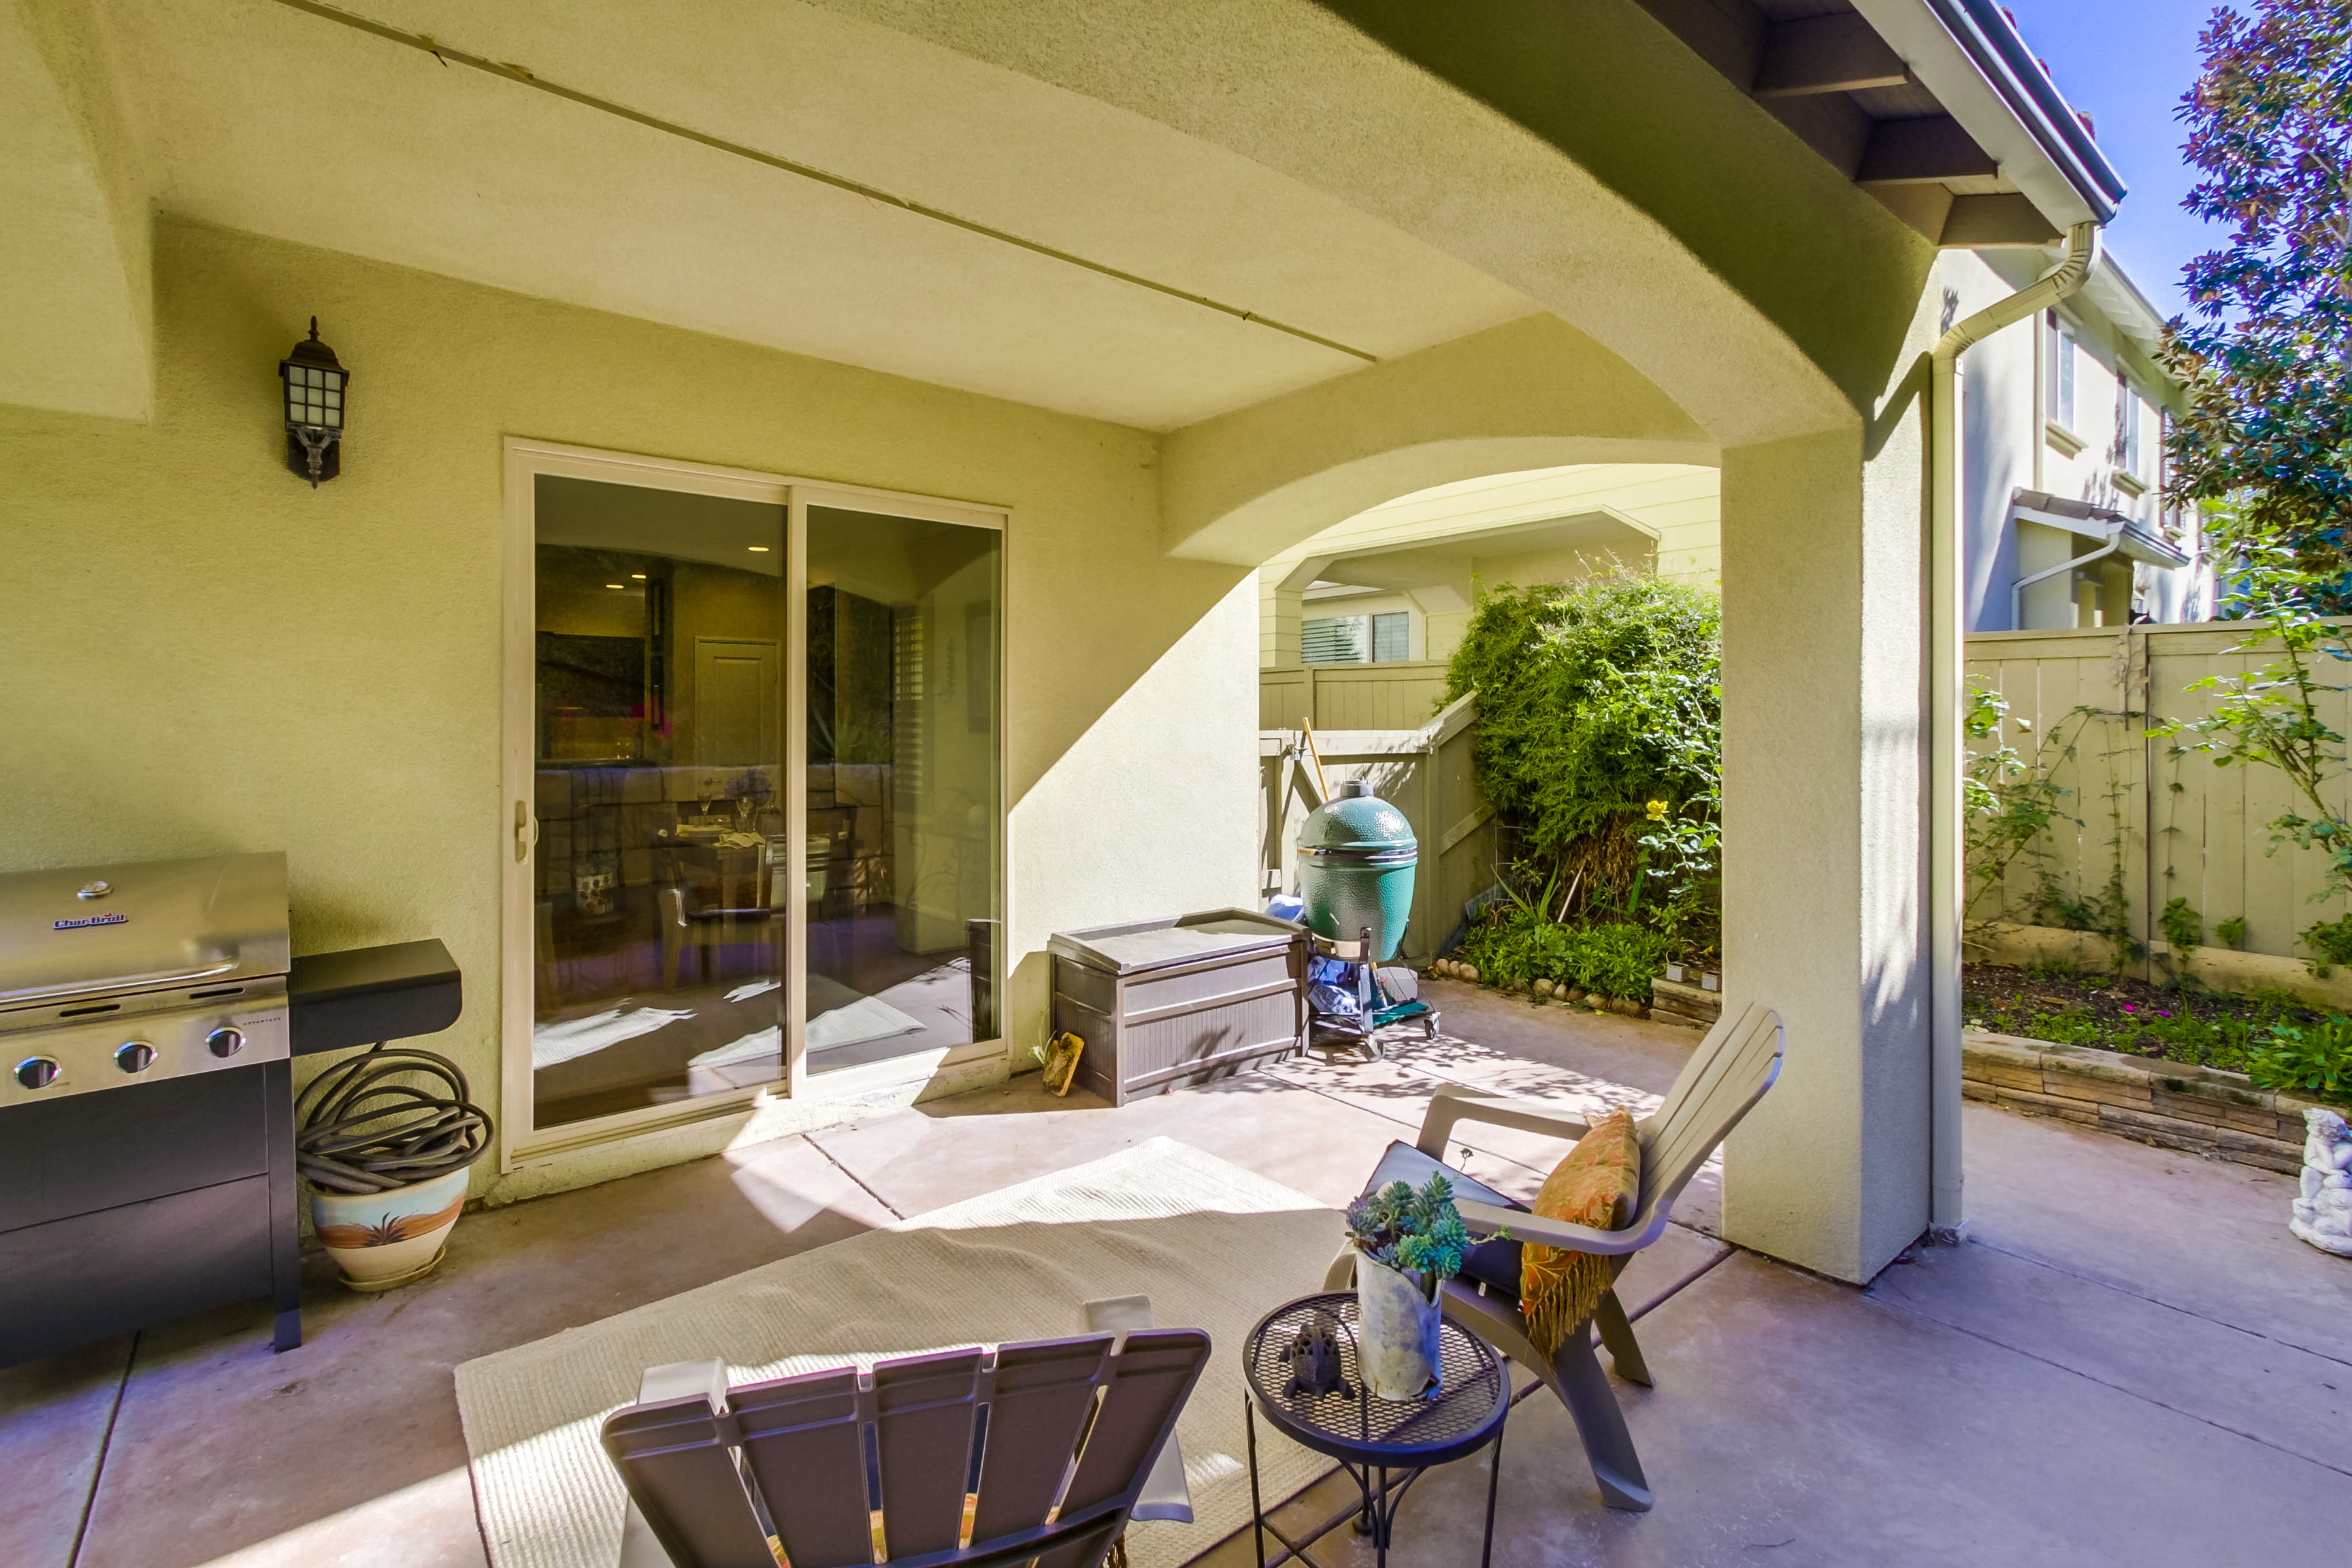 14130 Brent Wilsey Place Unit #3 -  San Diego, CA 92128